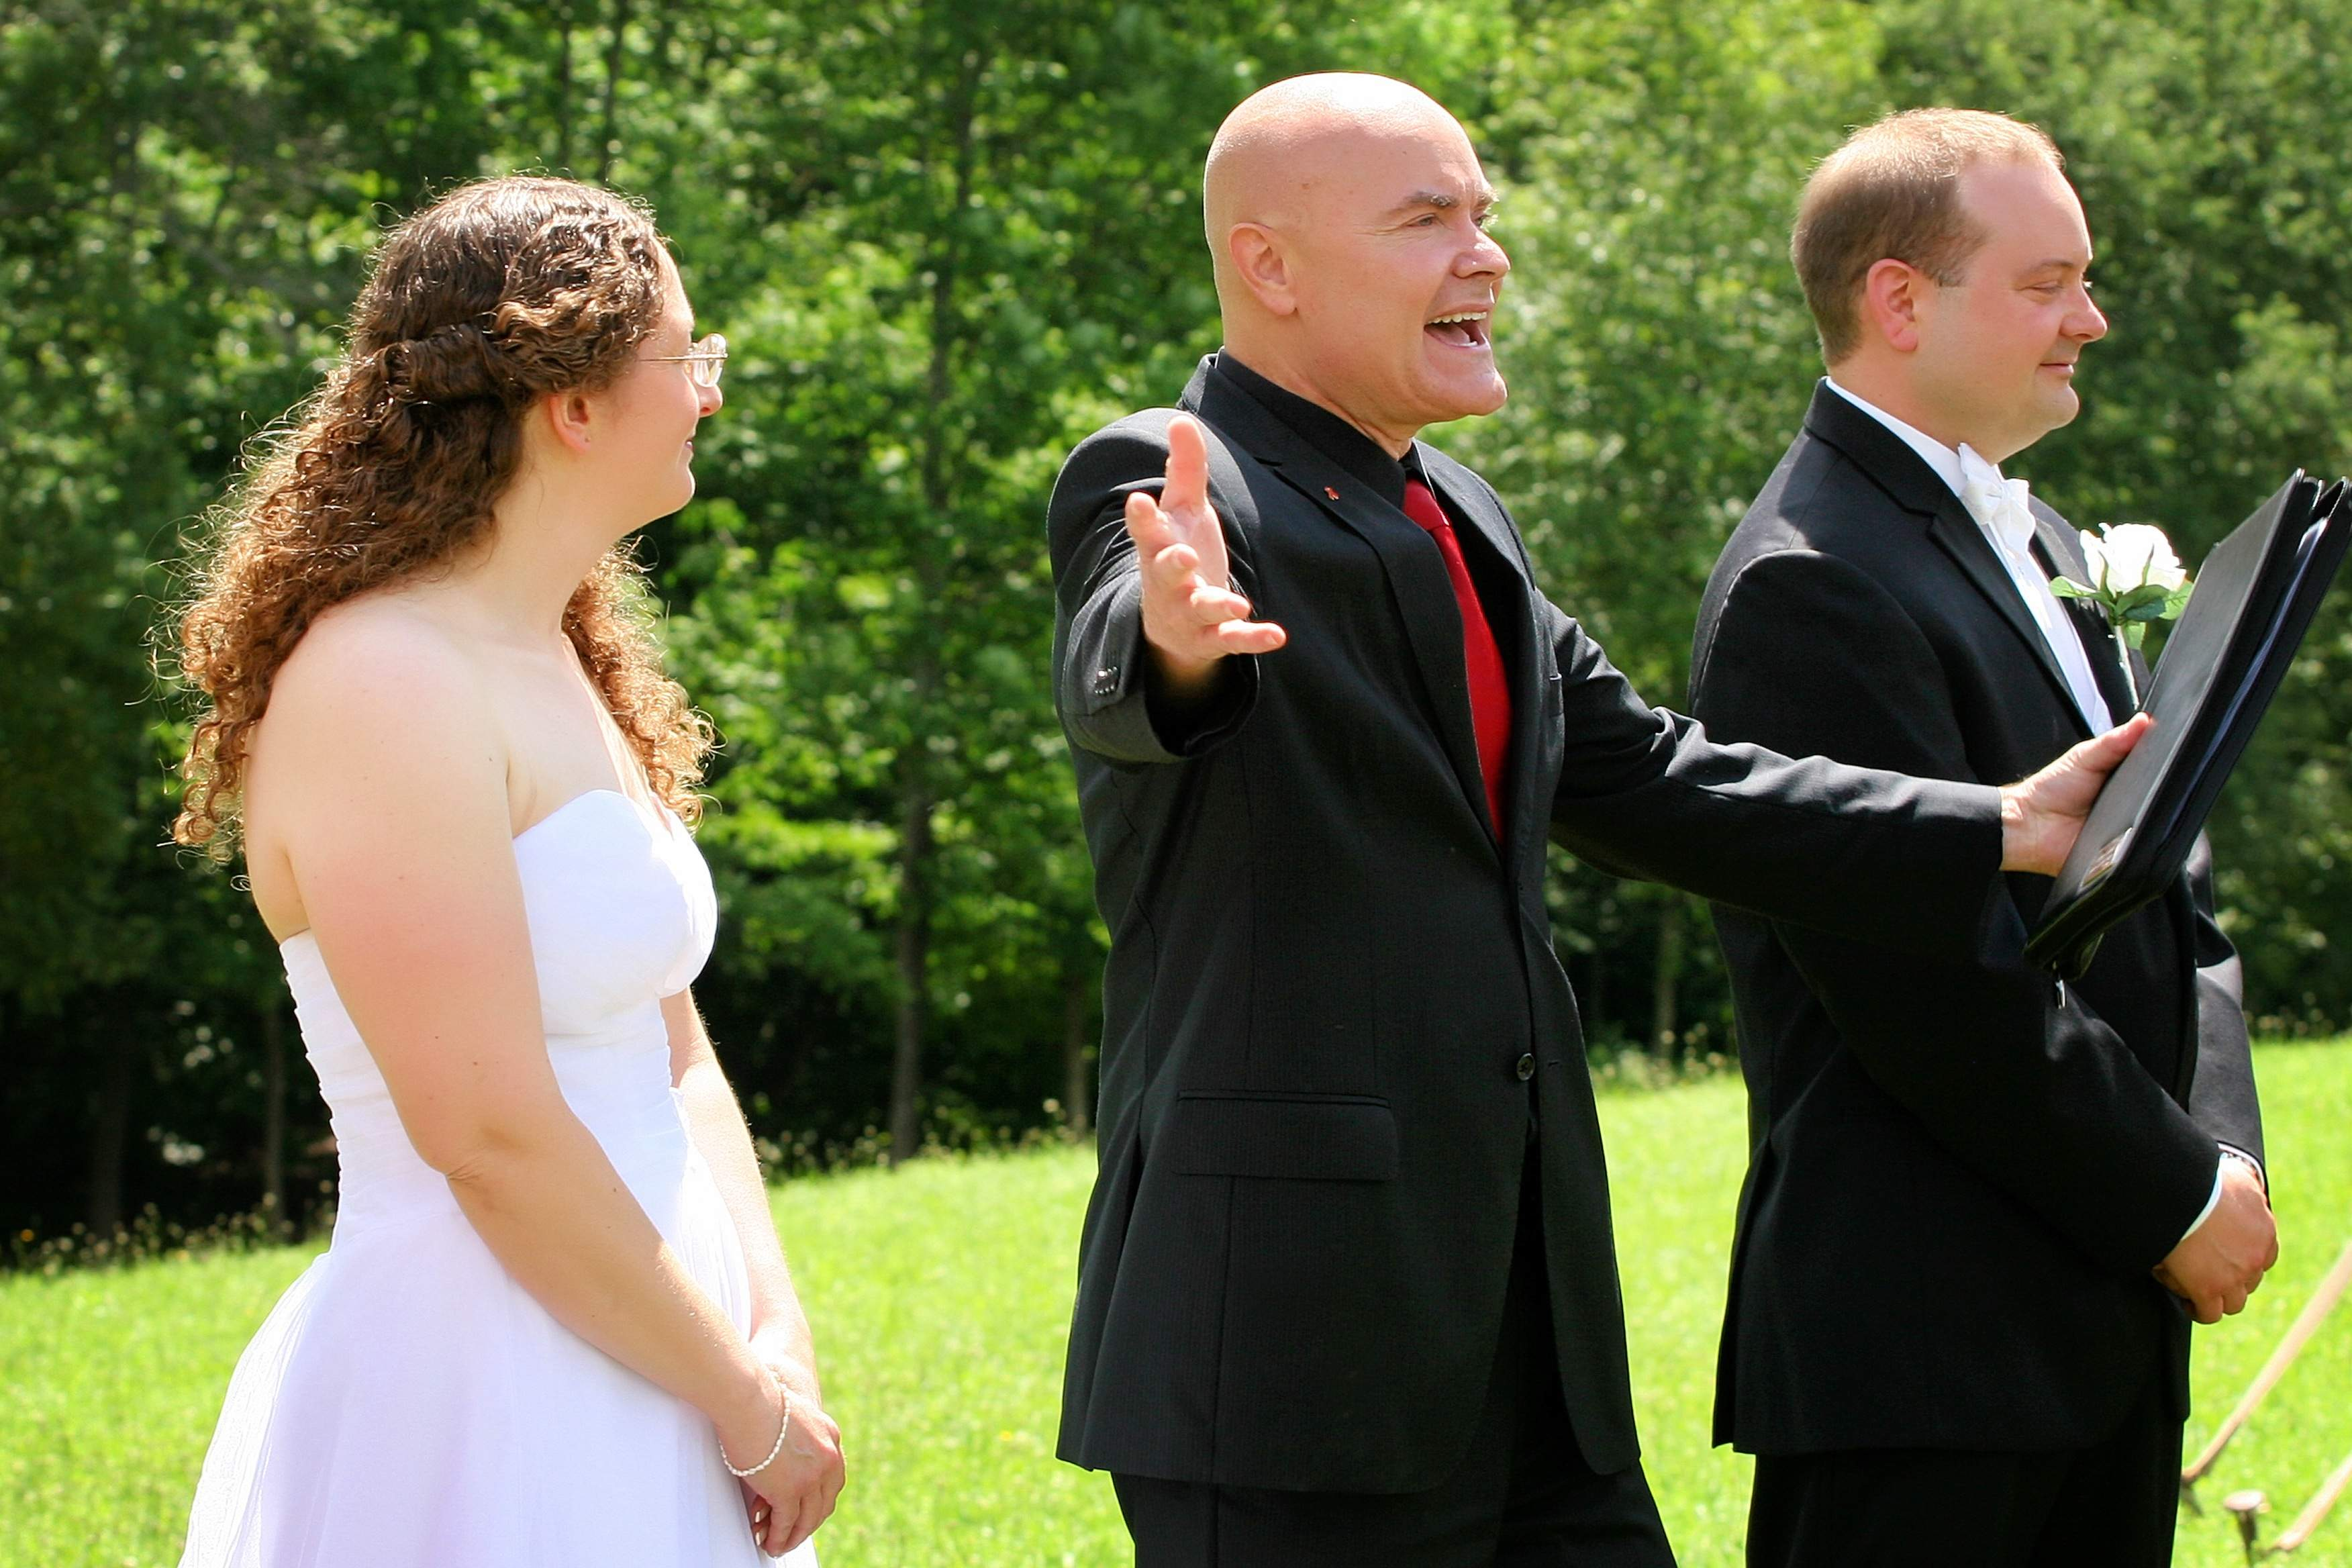 Greg Trulson, Justice of the Peace, Vermont Wedding Officiant, Elopements